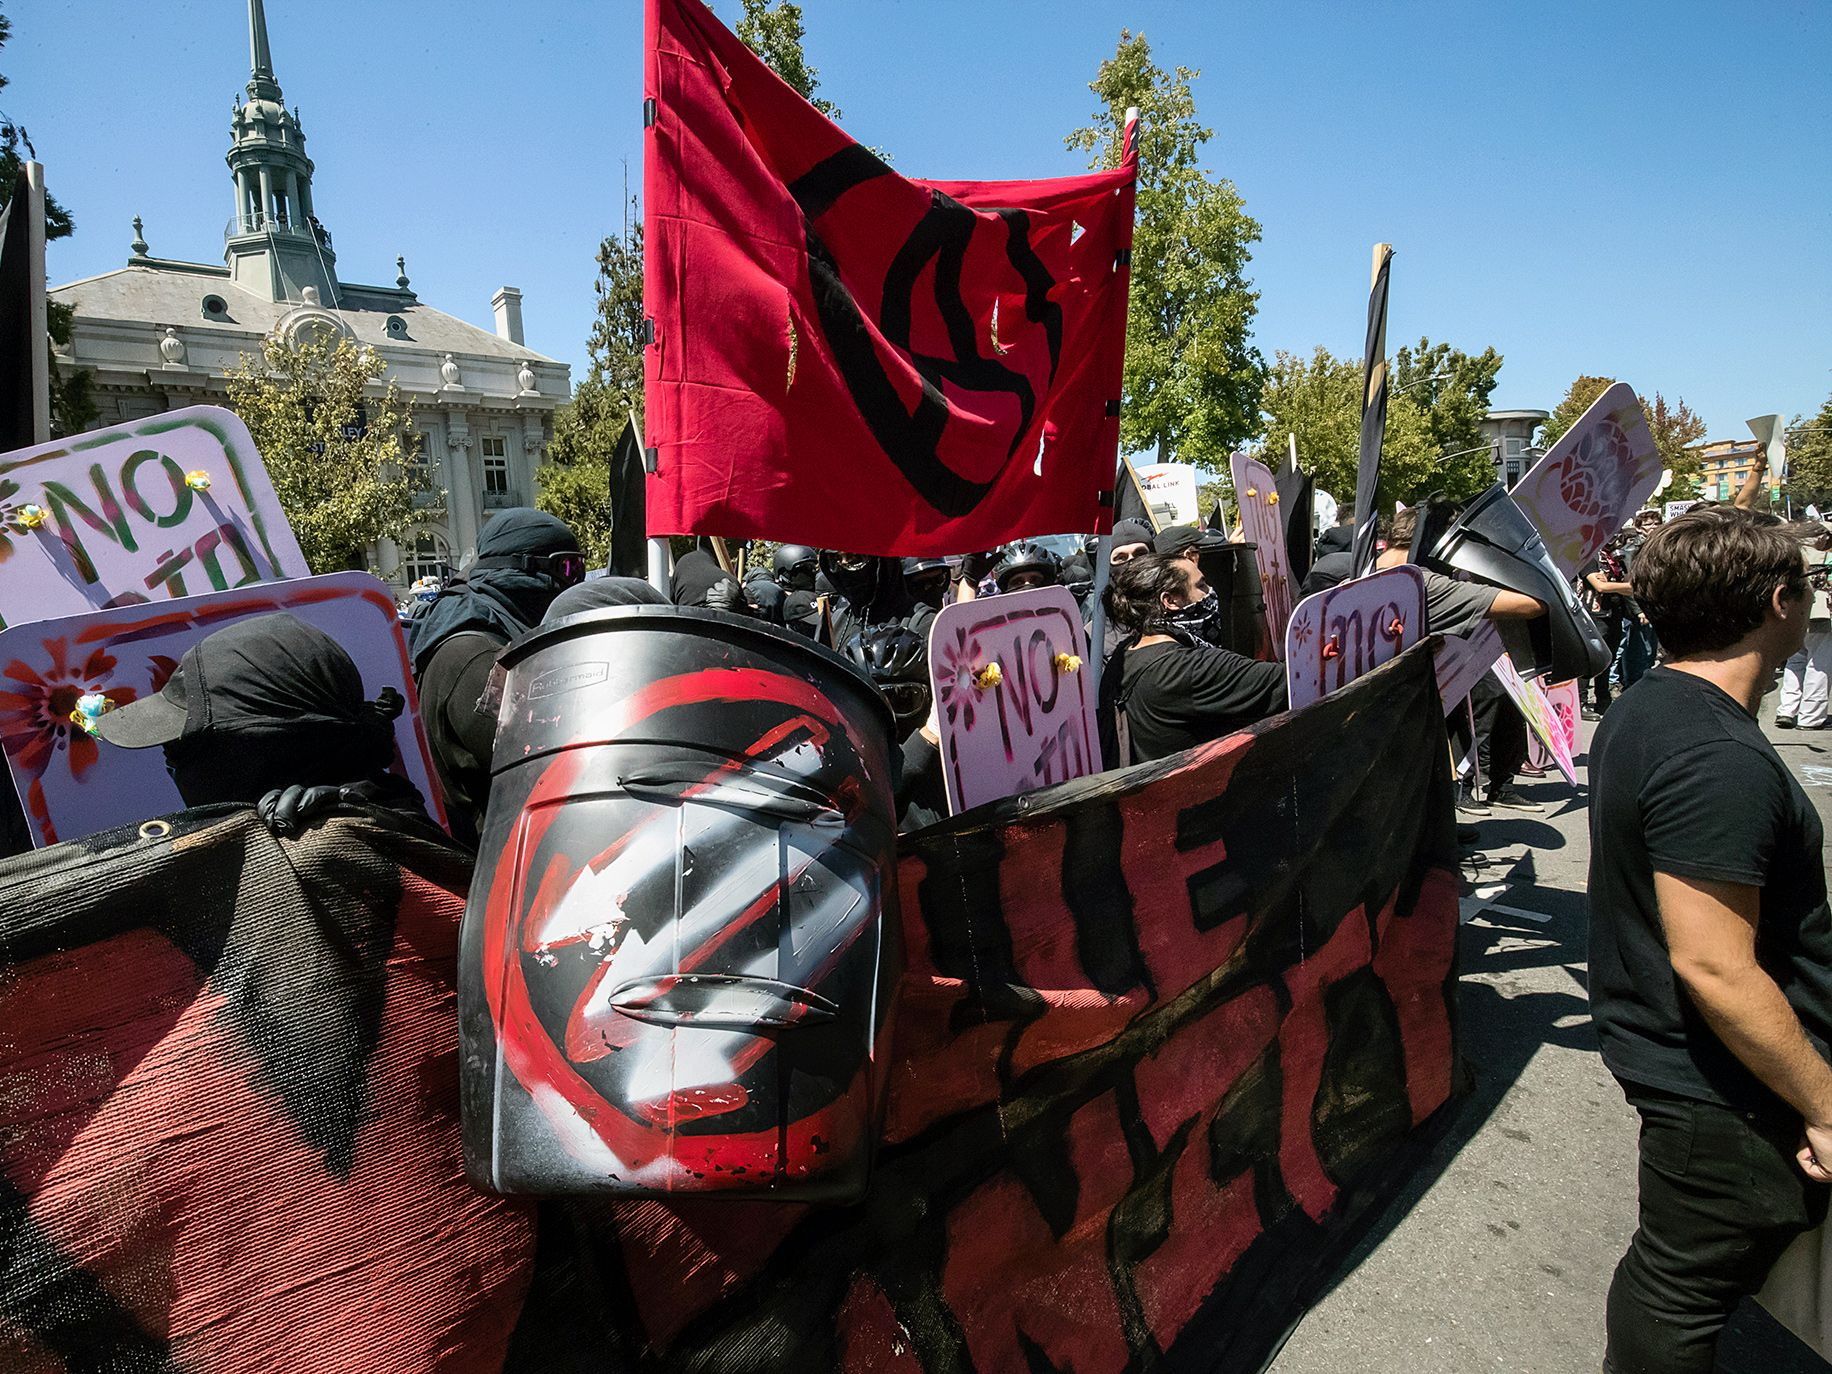 In August, local militant antifa joined more moderate demonstrators in a seminal moment in Berkeley.